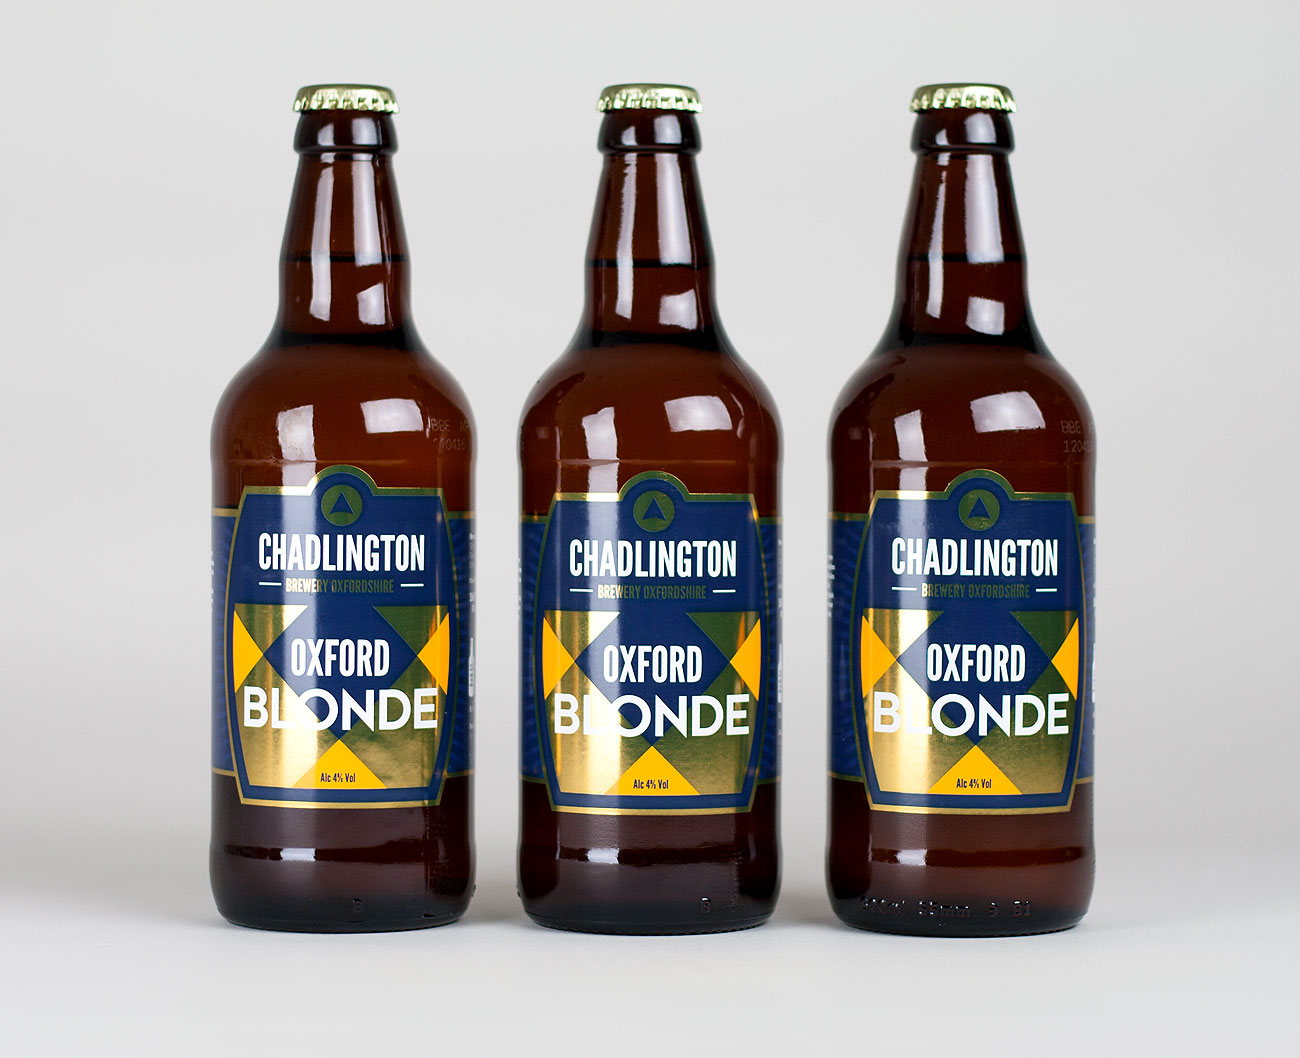 Oxford Blonde Ale bottle label design